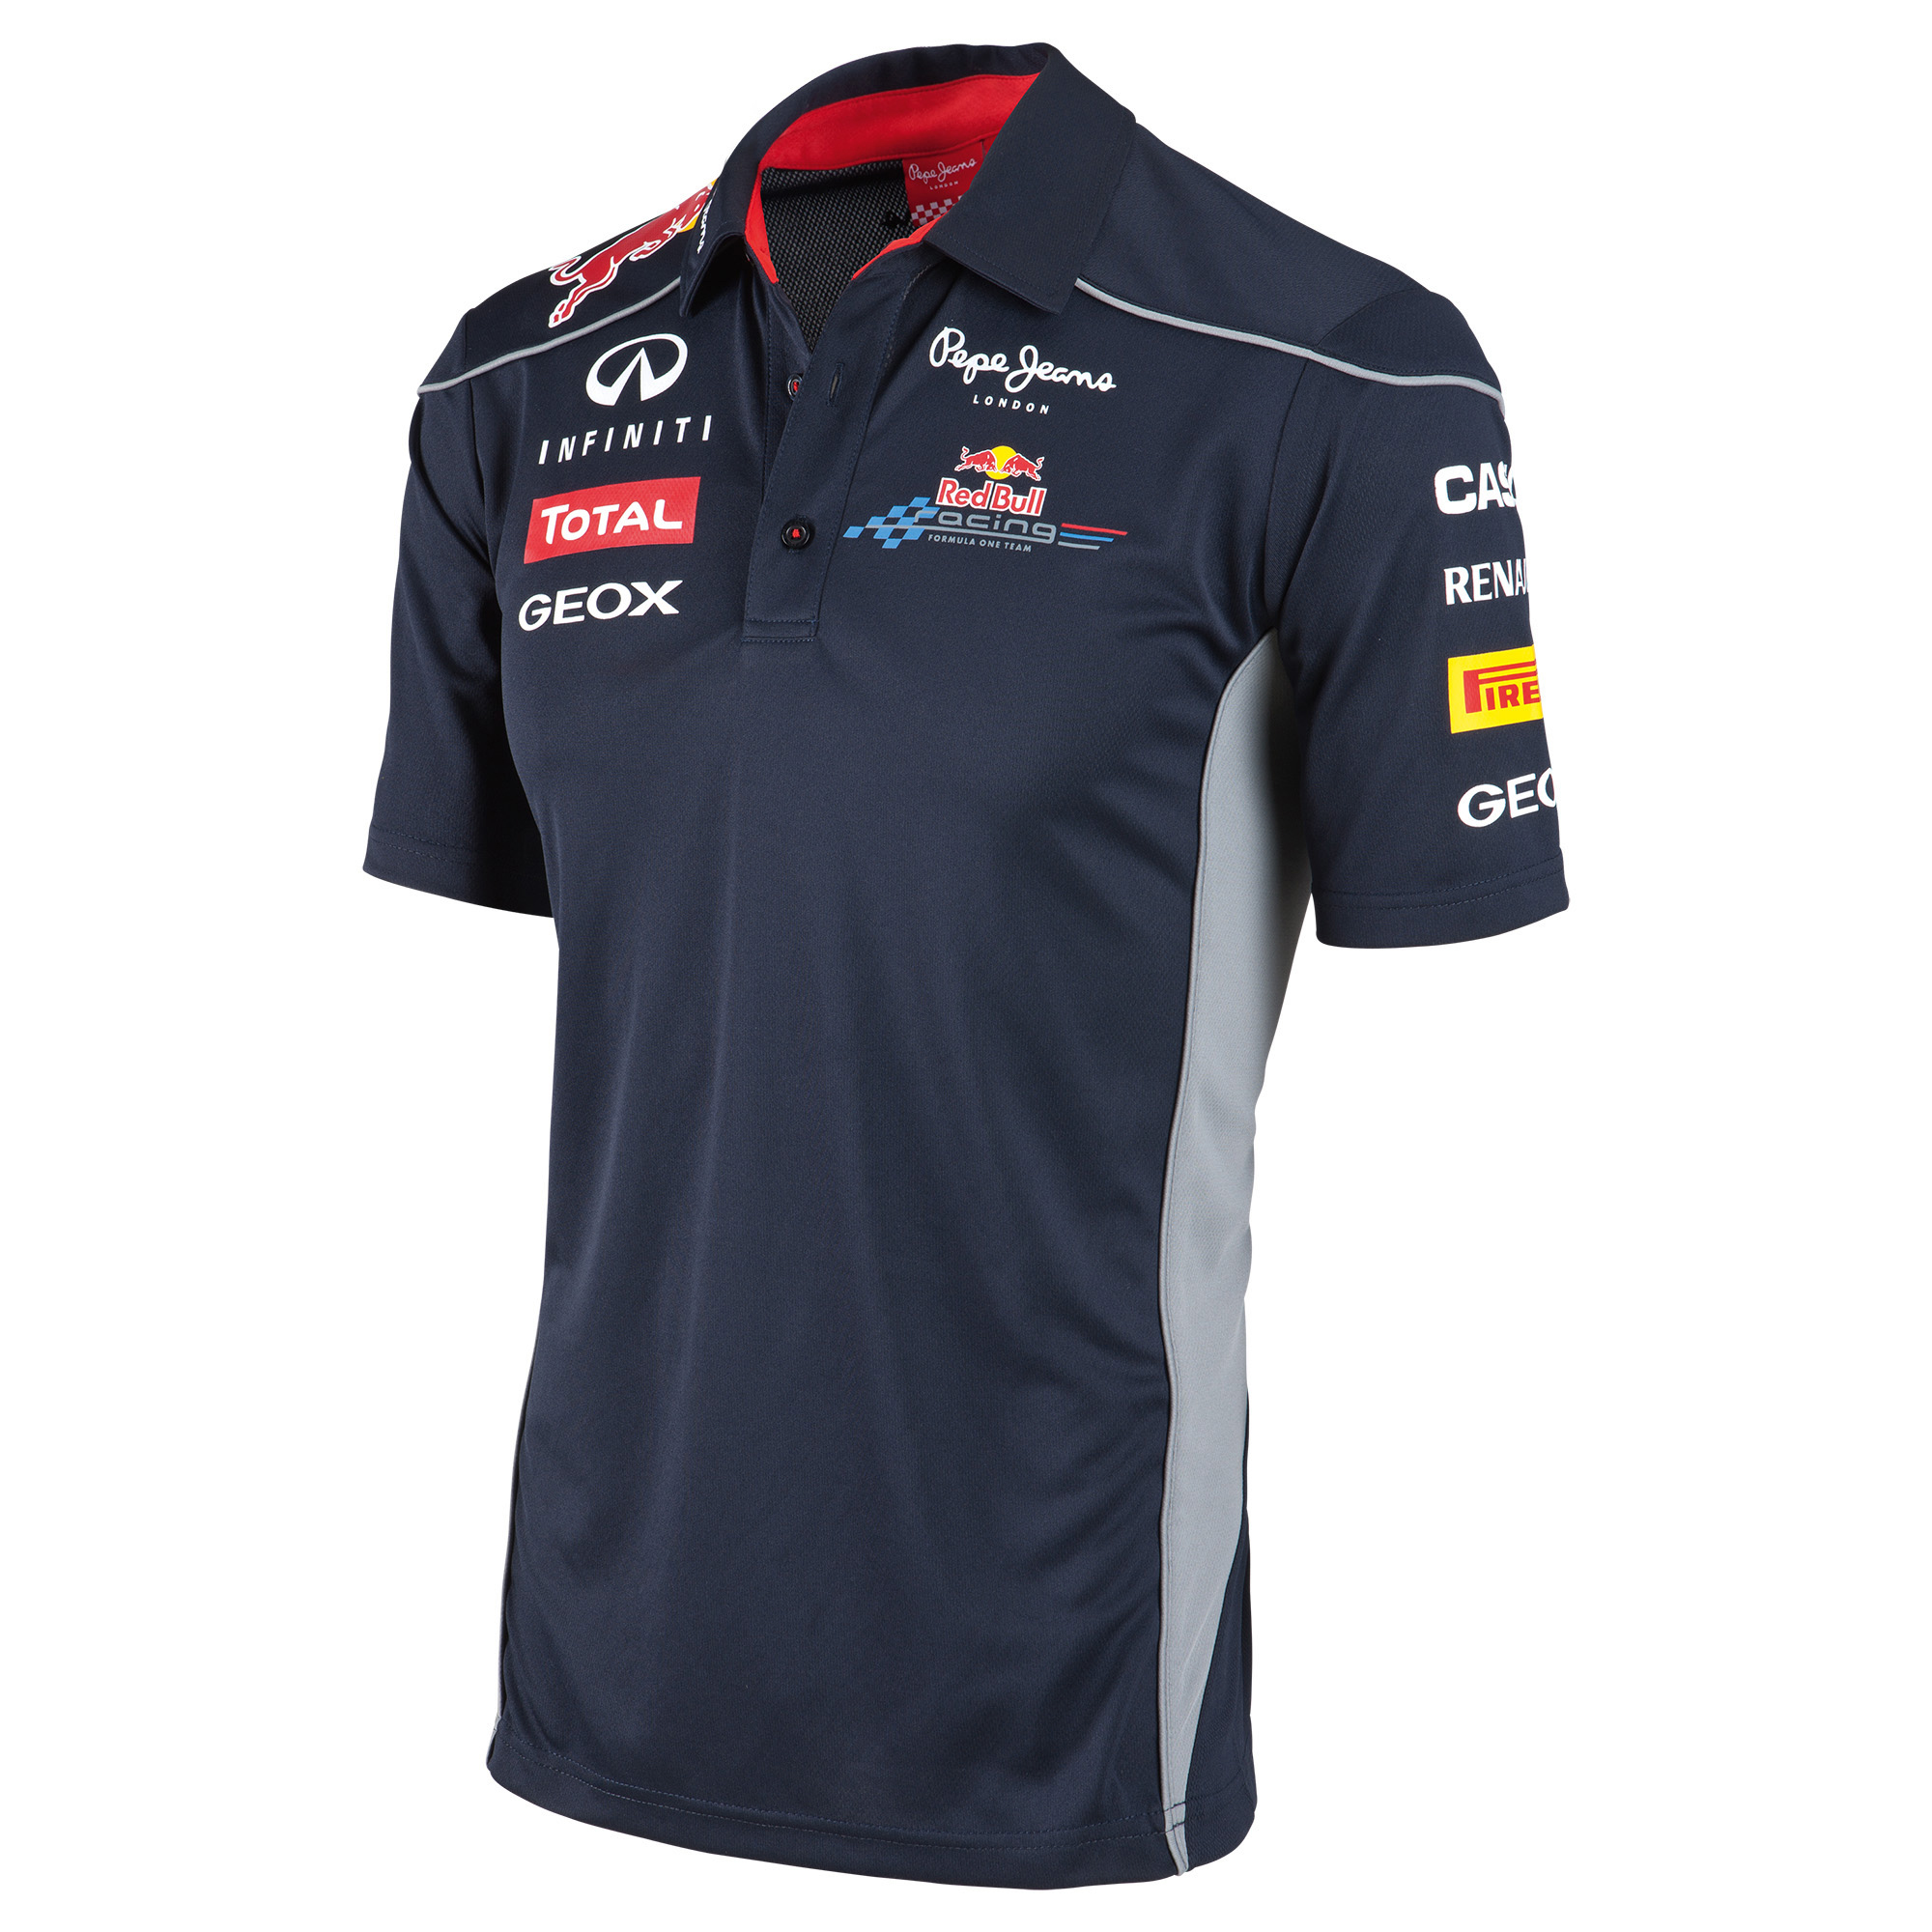 Infiniti Red Bull Racing Official Teamline Functional T-Shirt